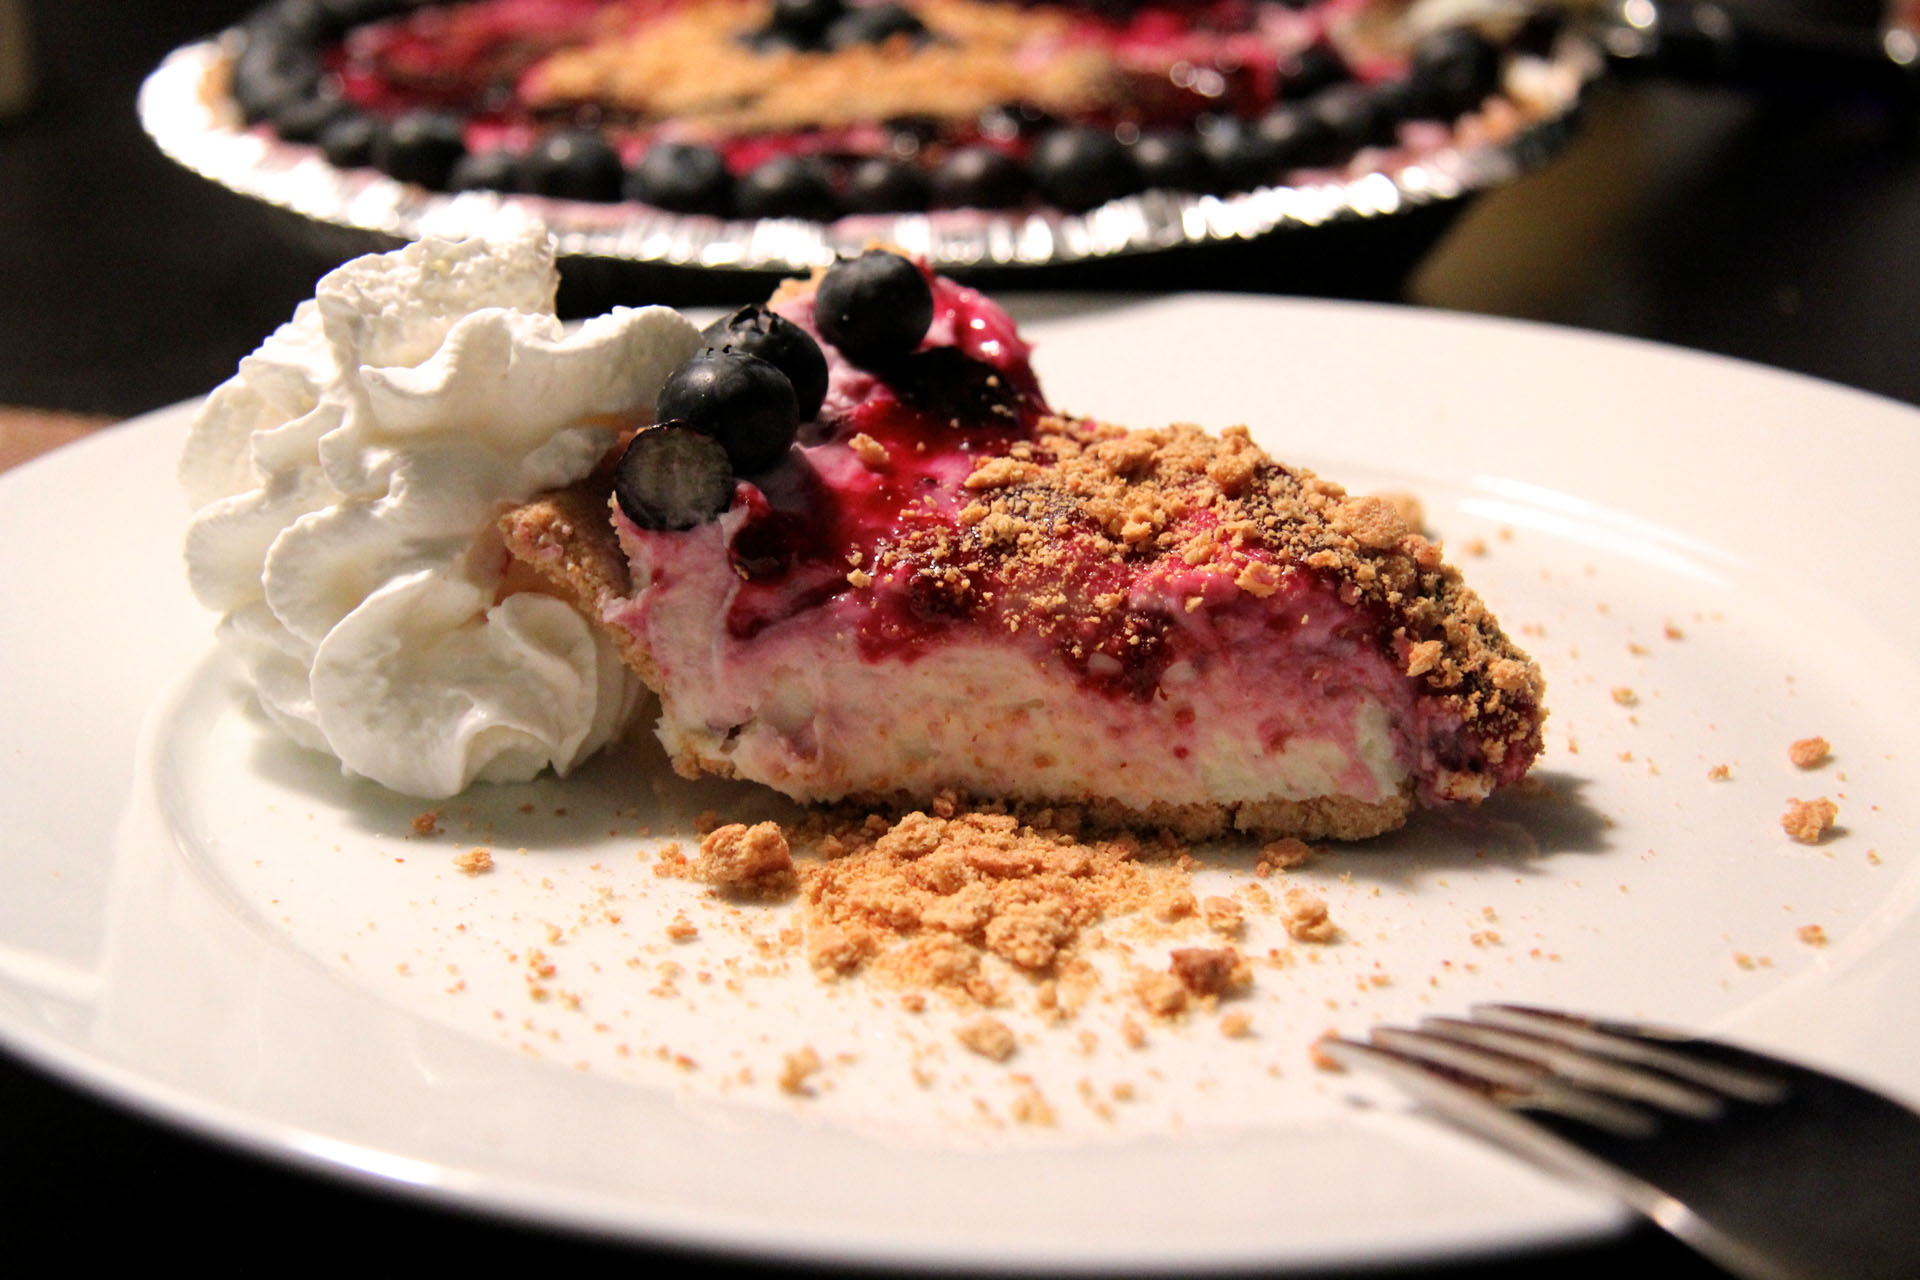 No bake Blueberry Cheesecake with Graham Cracker Crust - Fangalicious